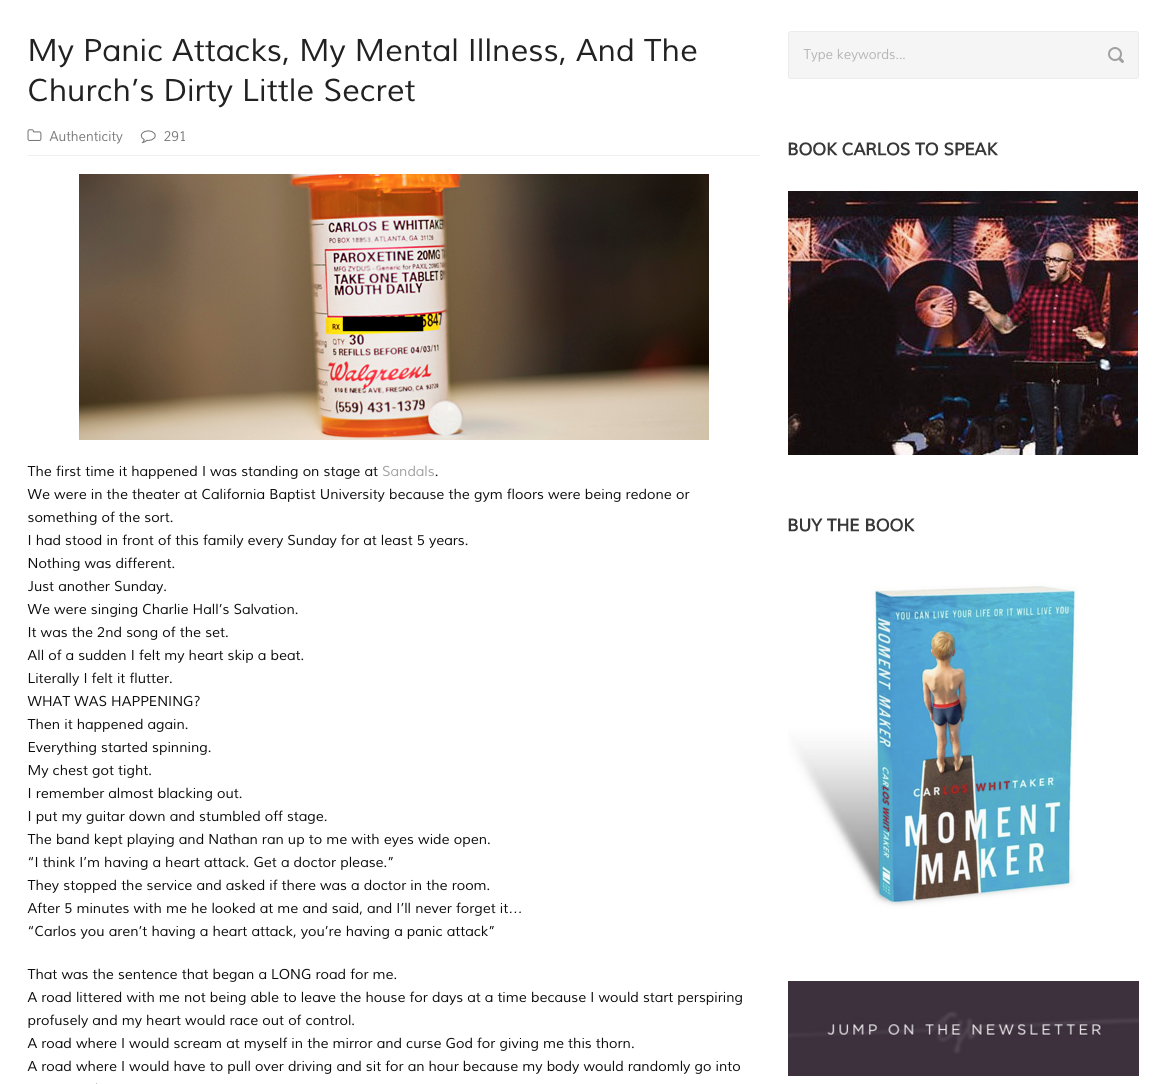 My Panic Attacks, My Mental Illness, And The Church's Dirty Little Secret